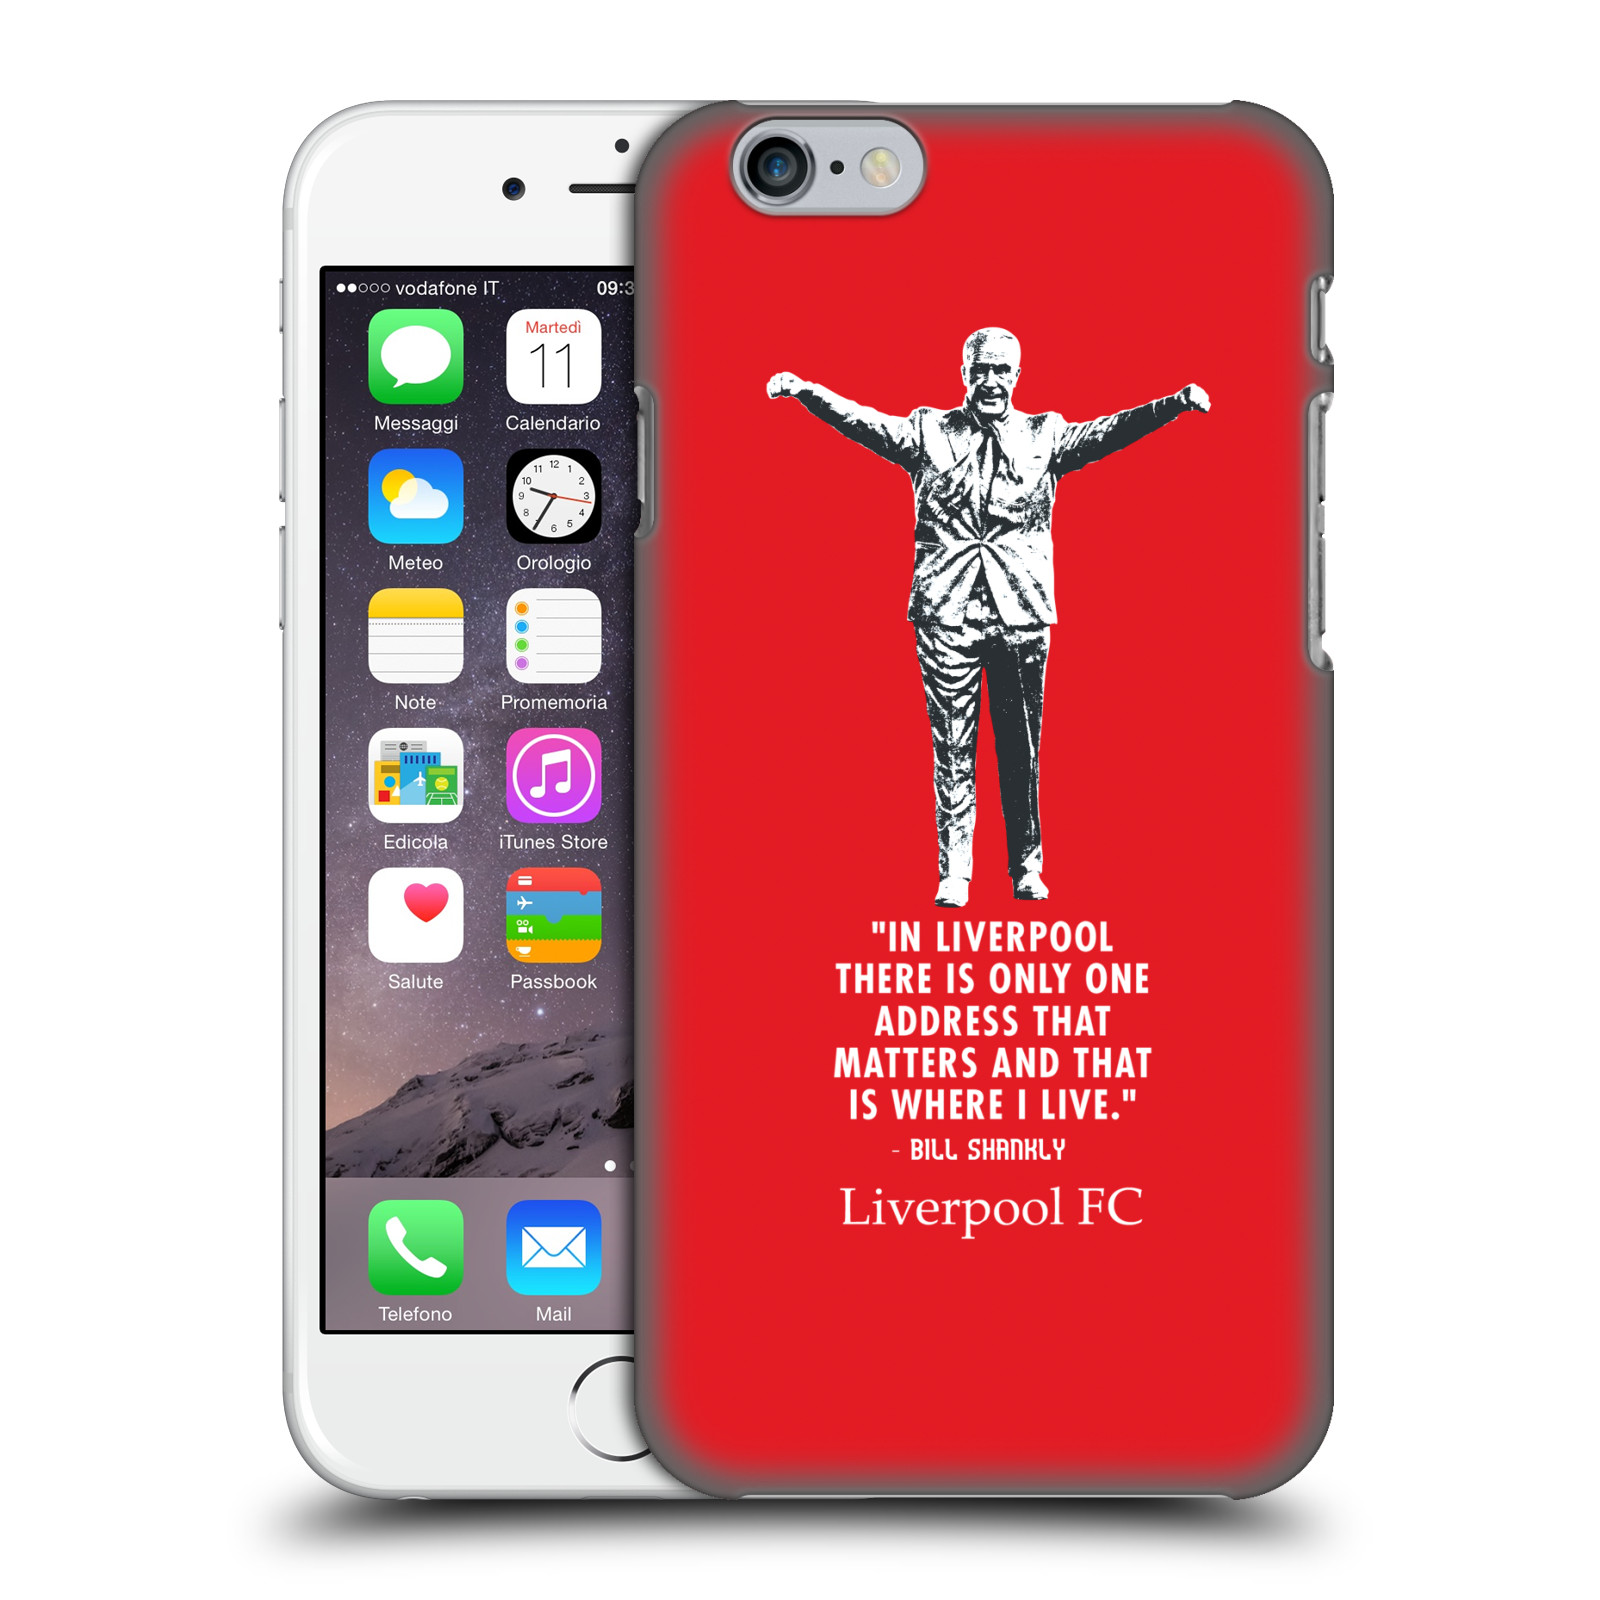 Liverpool FC LFC Bill Shankly Quotes-Liverpool